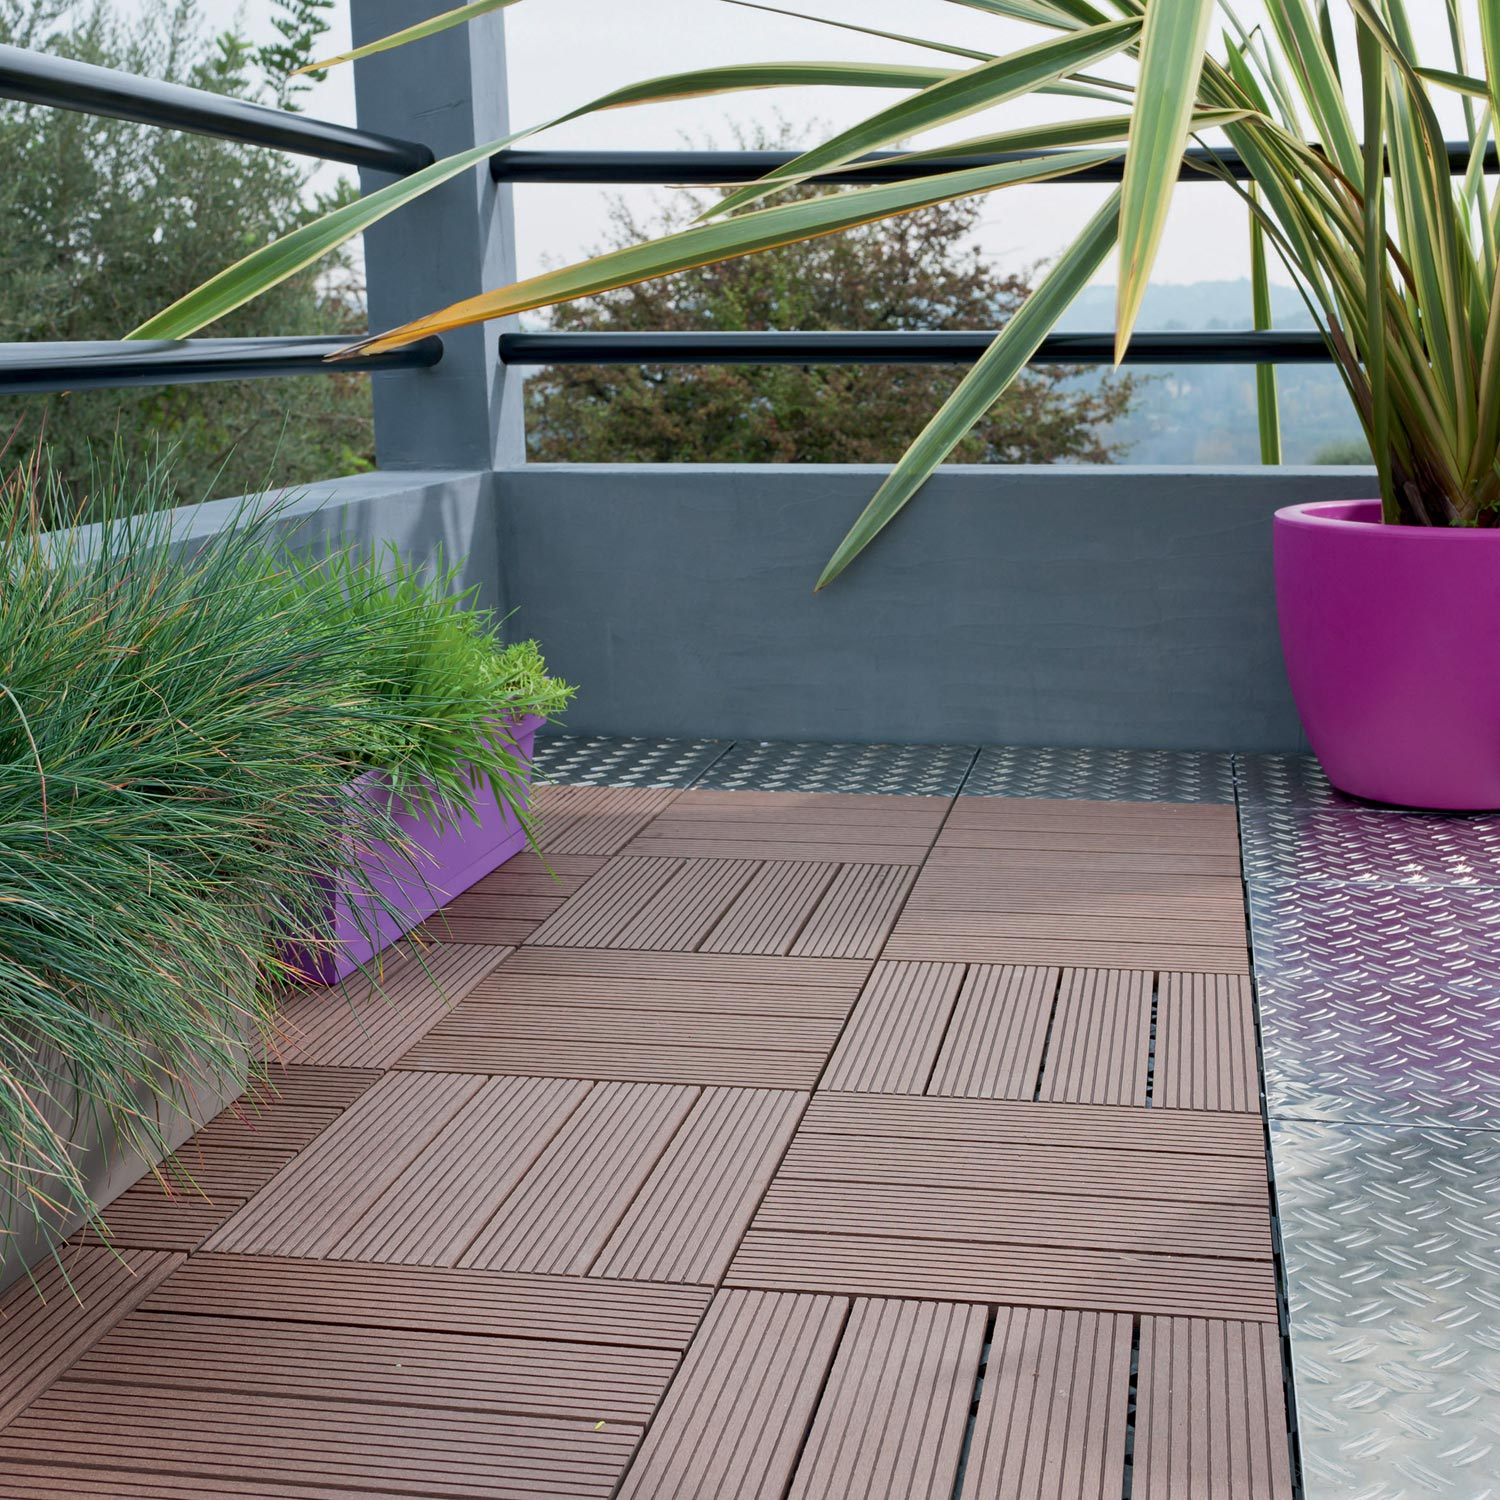 Dalle clipsable snap and go en composite bois bambou brun l30xl30cmxep23mm - Dalle terrasse composite leroy merlin ...